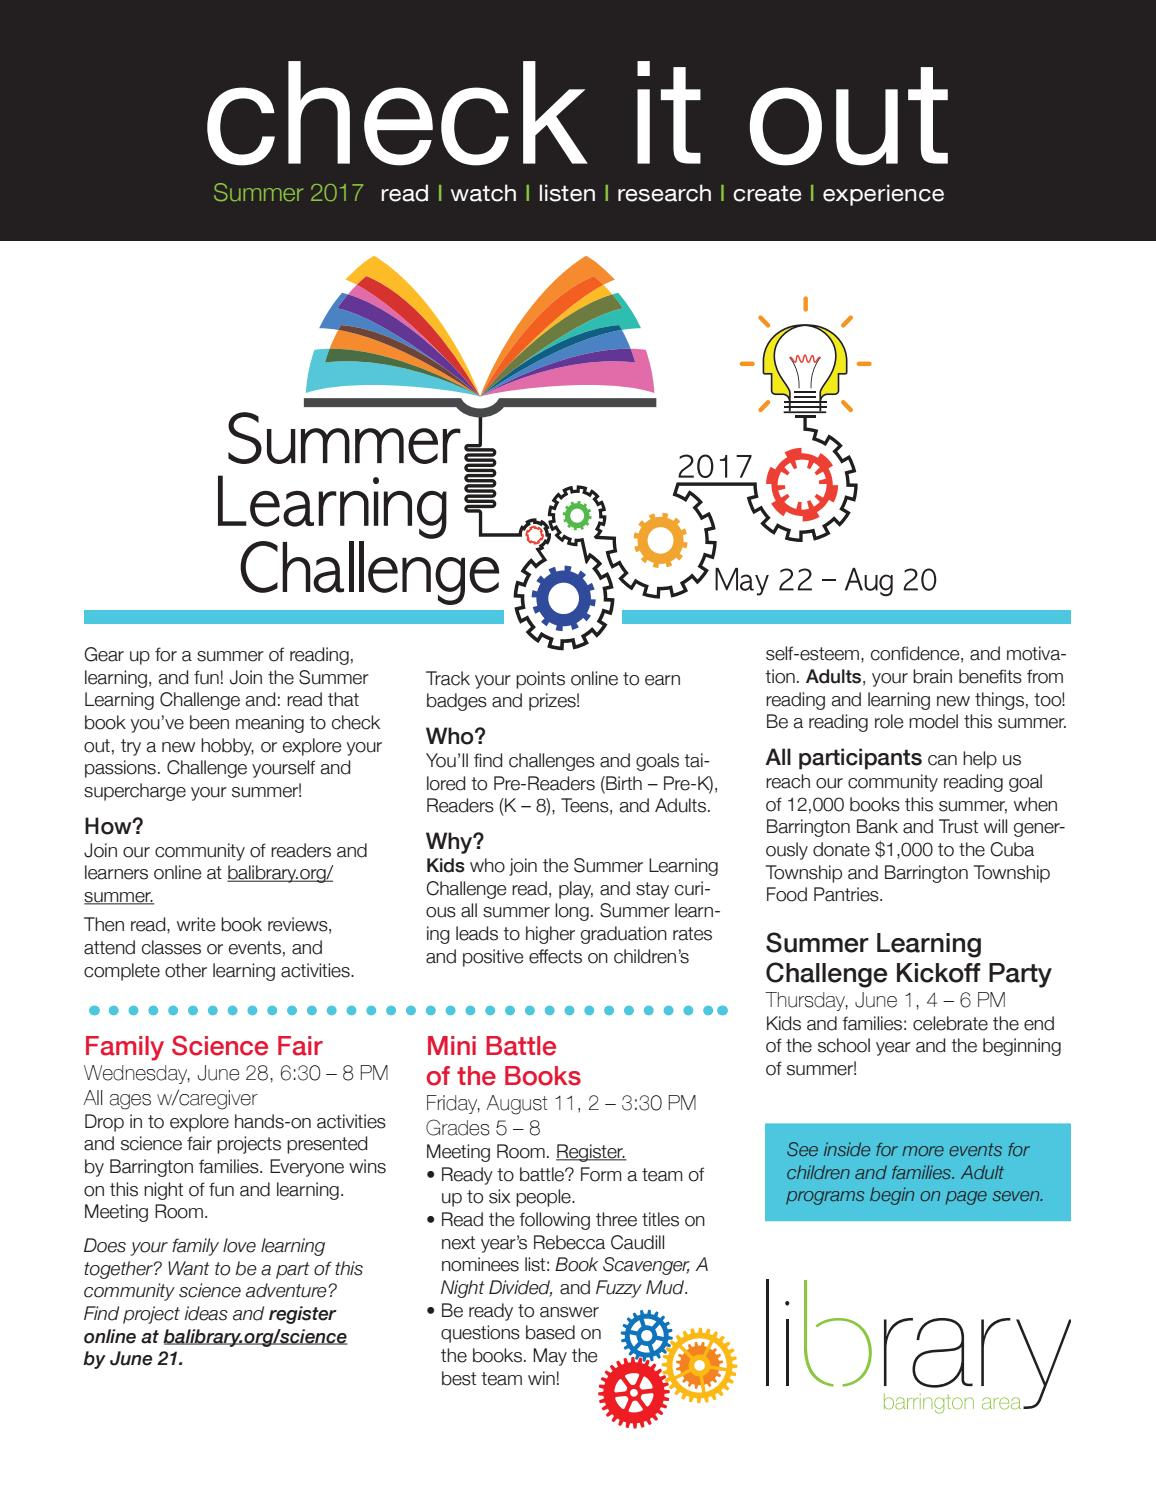 Check It Out Summer 2017 newsletter from the Barrington Area